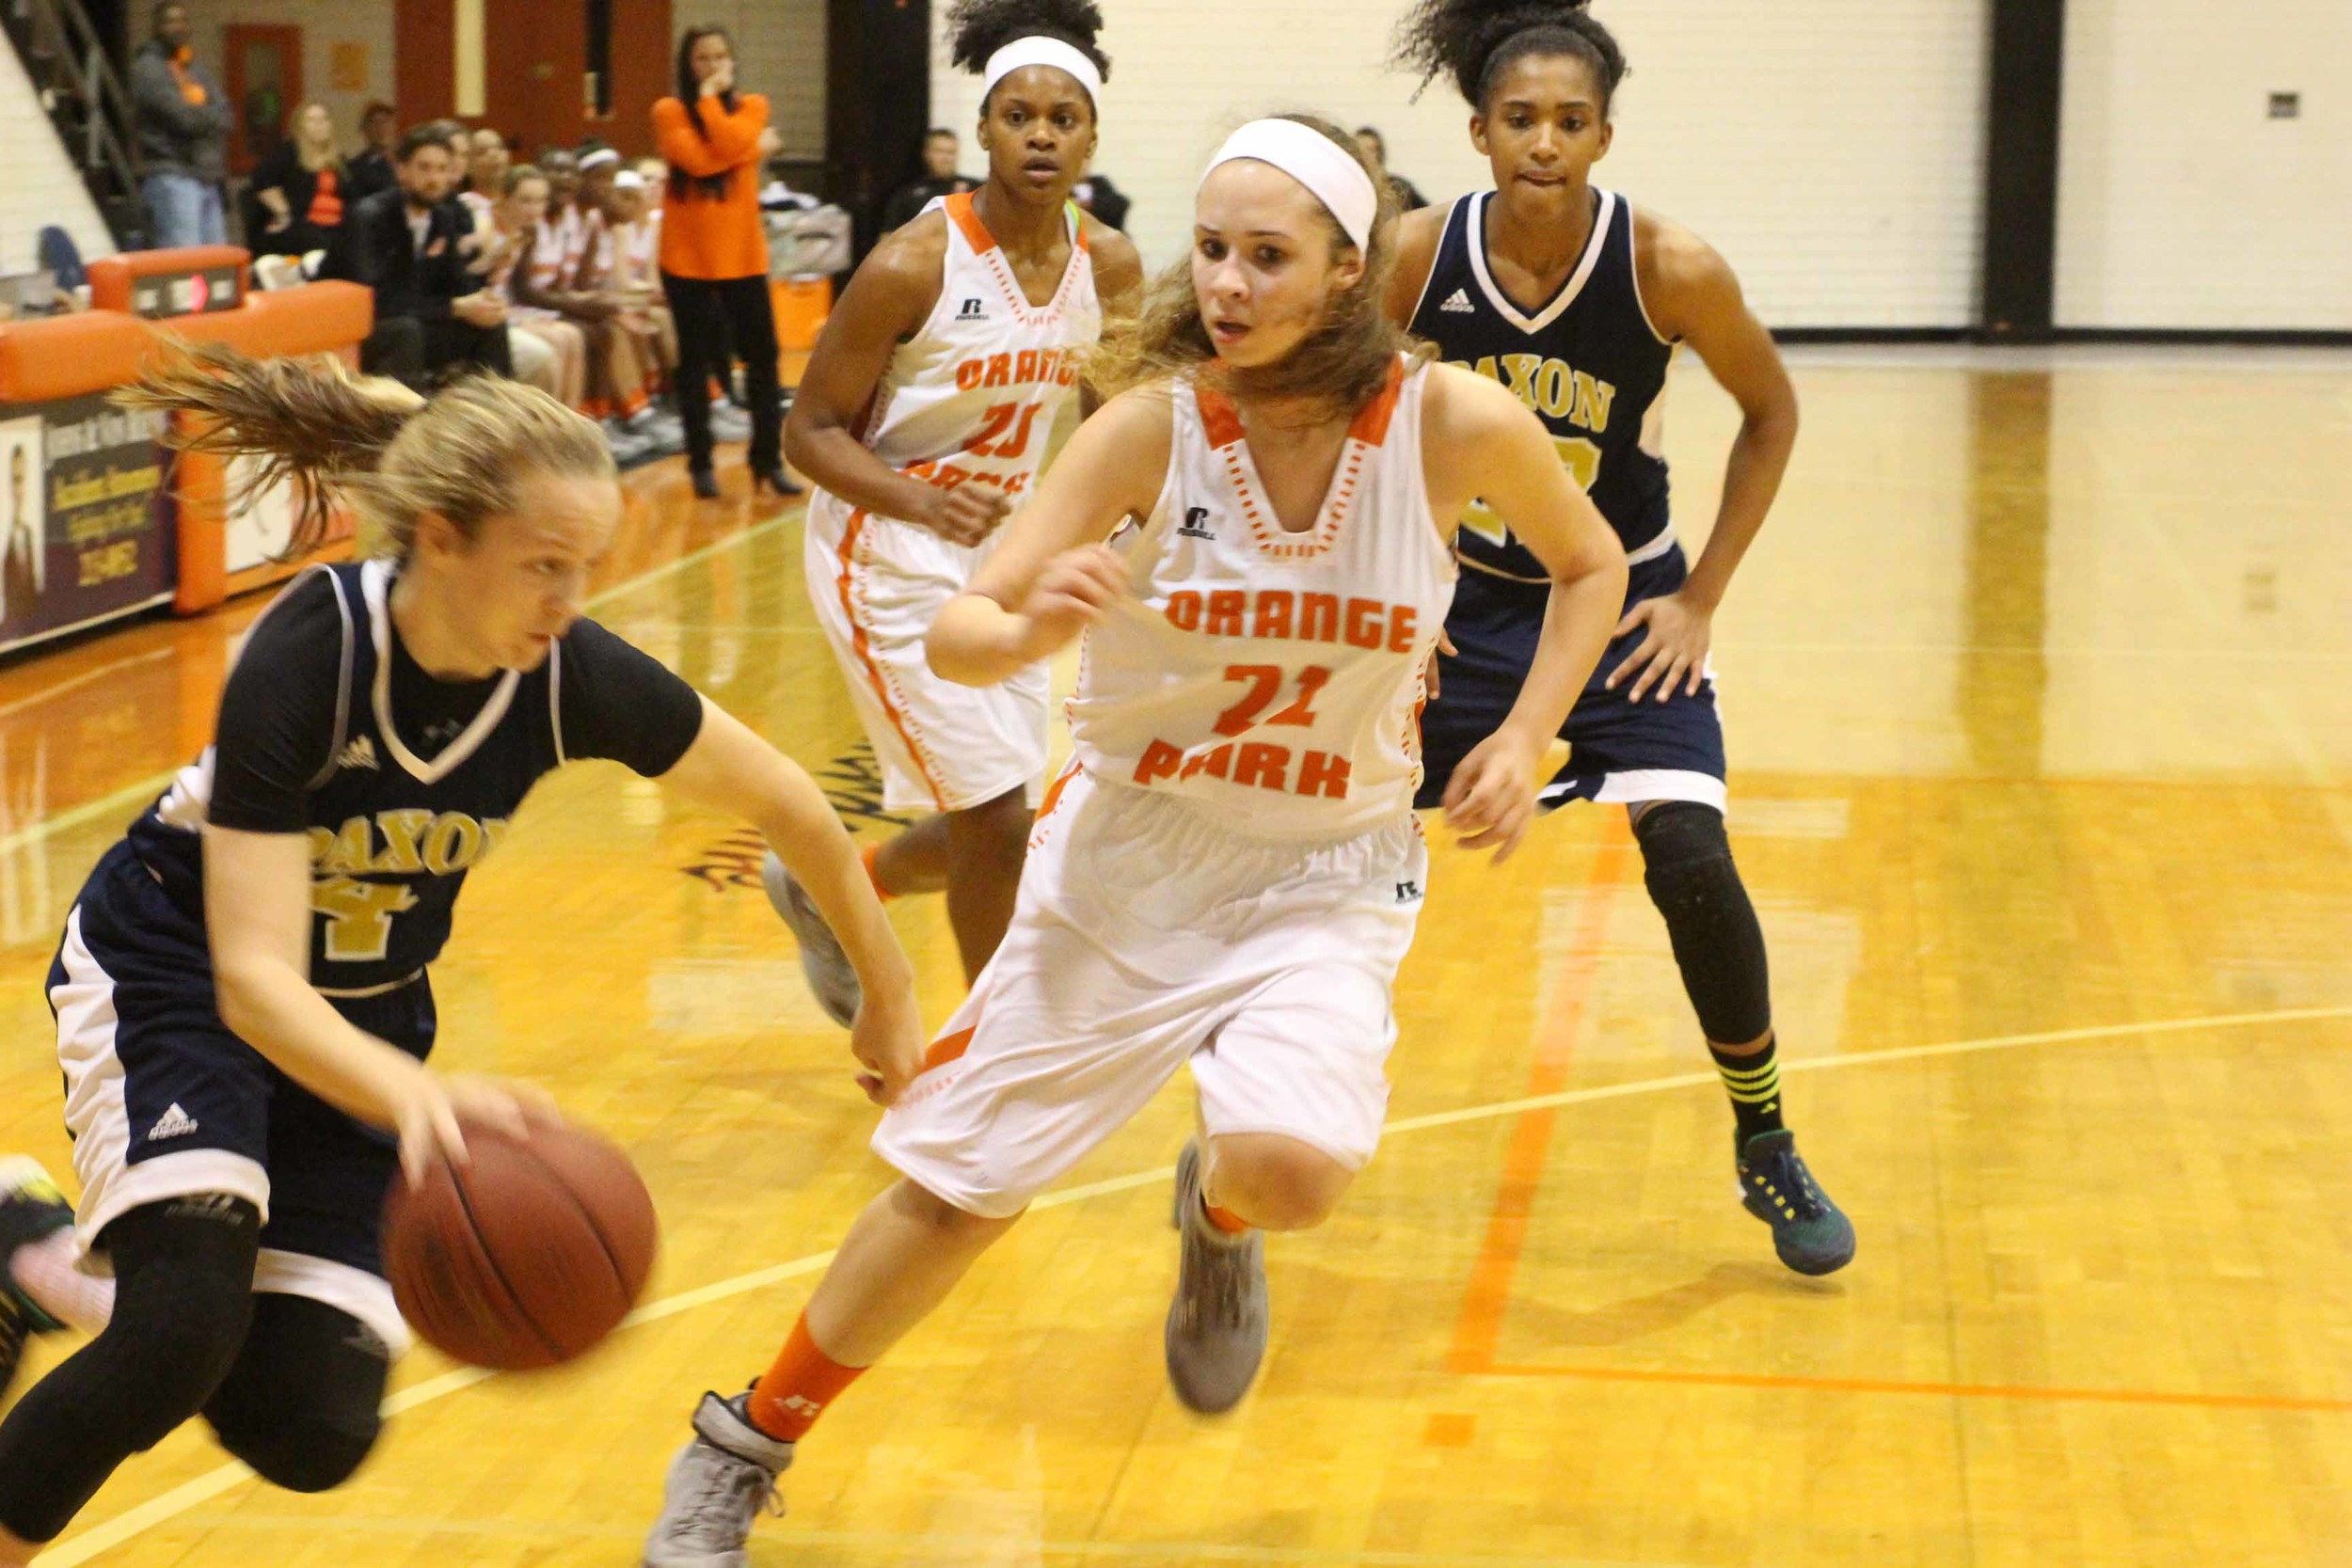 Orange Park High senior Gianni Ruemmeley was the driving force in a complete season turnaround, a district title and a region playoff win for the Lady Raiders.